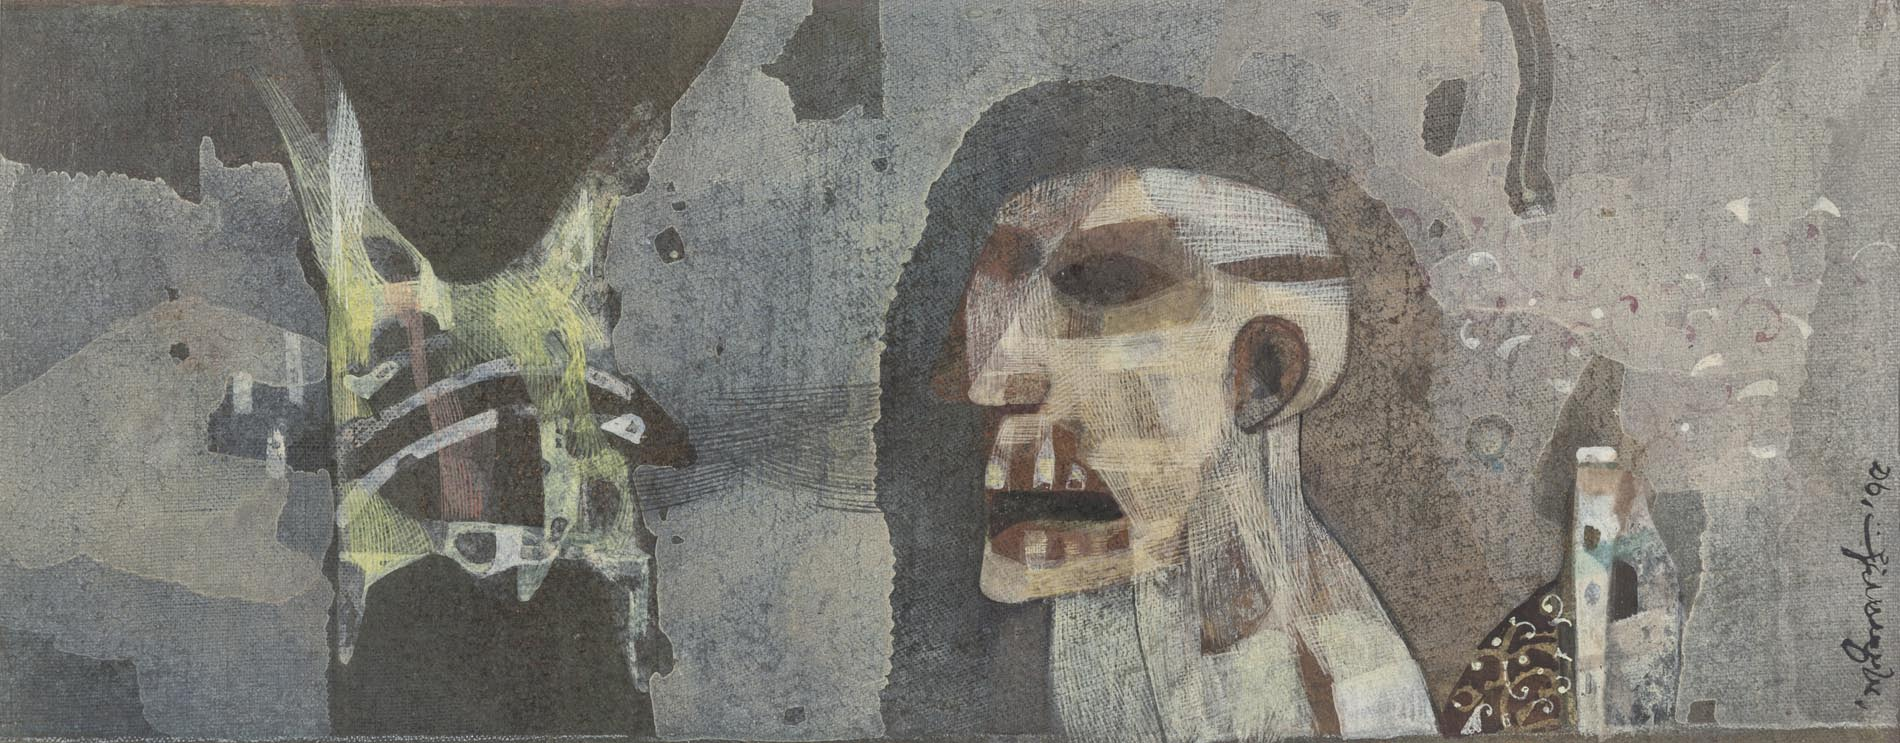 over the edge, crossing the line - five artists from Bengal